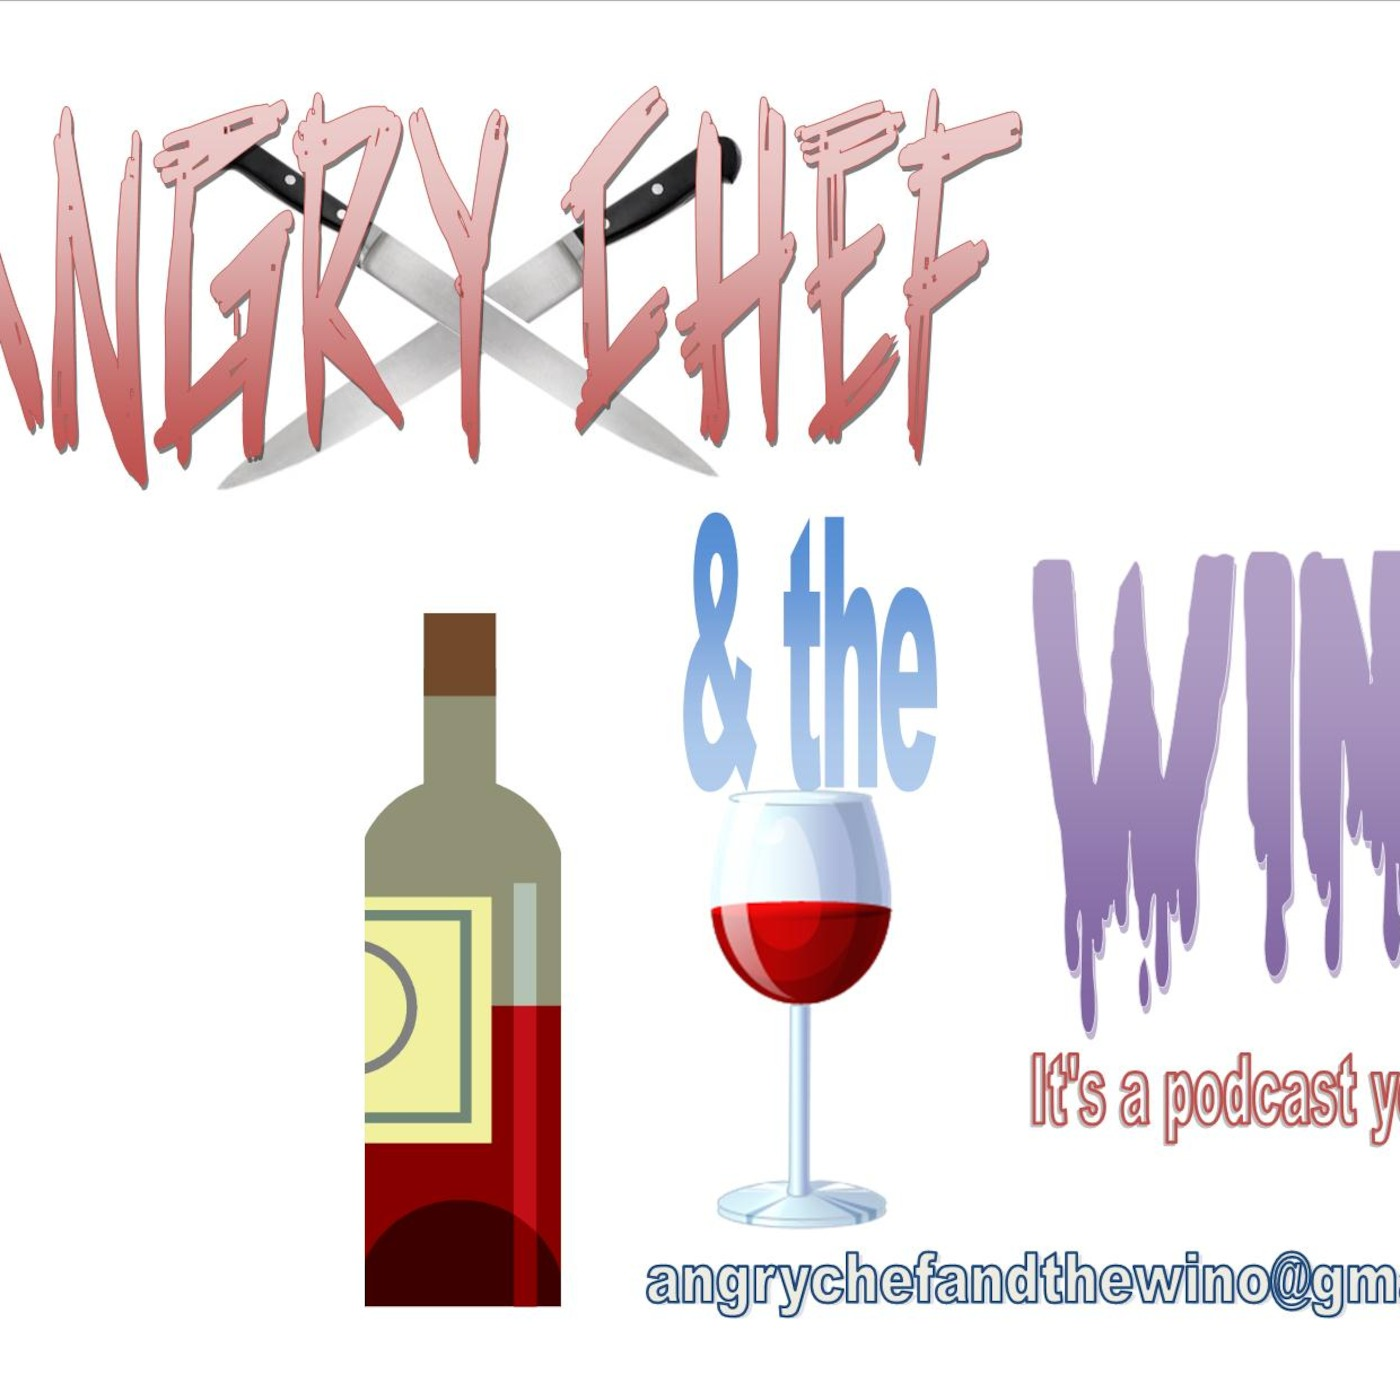 Angry Chef and the Wino